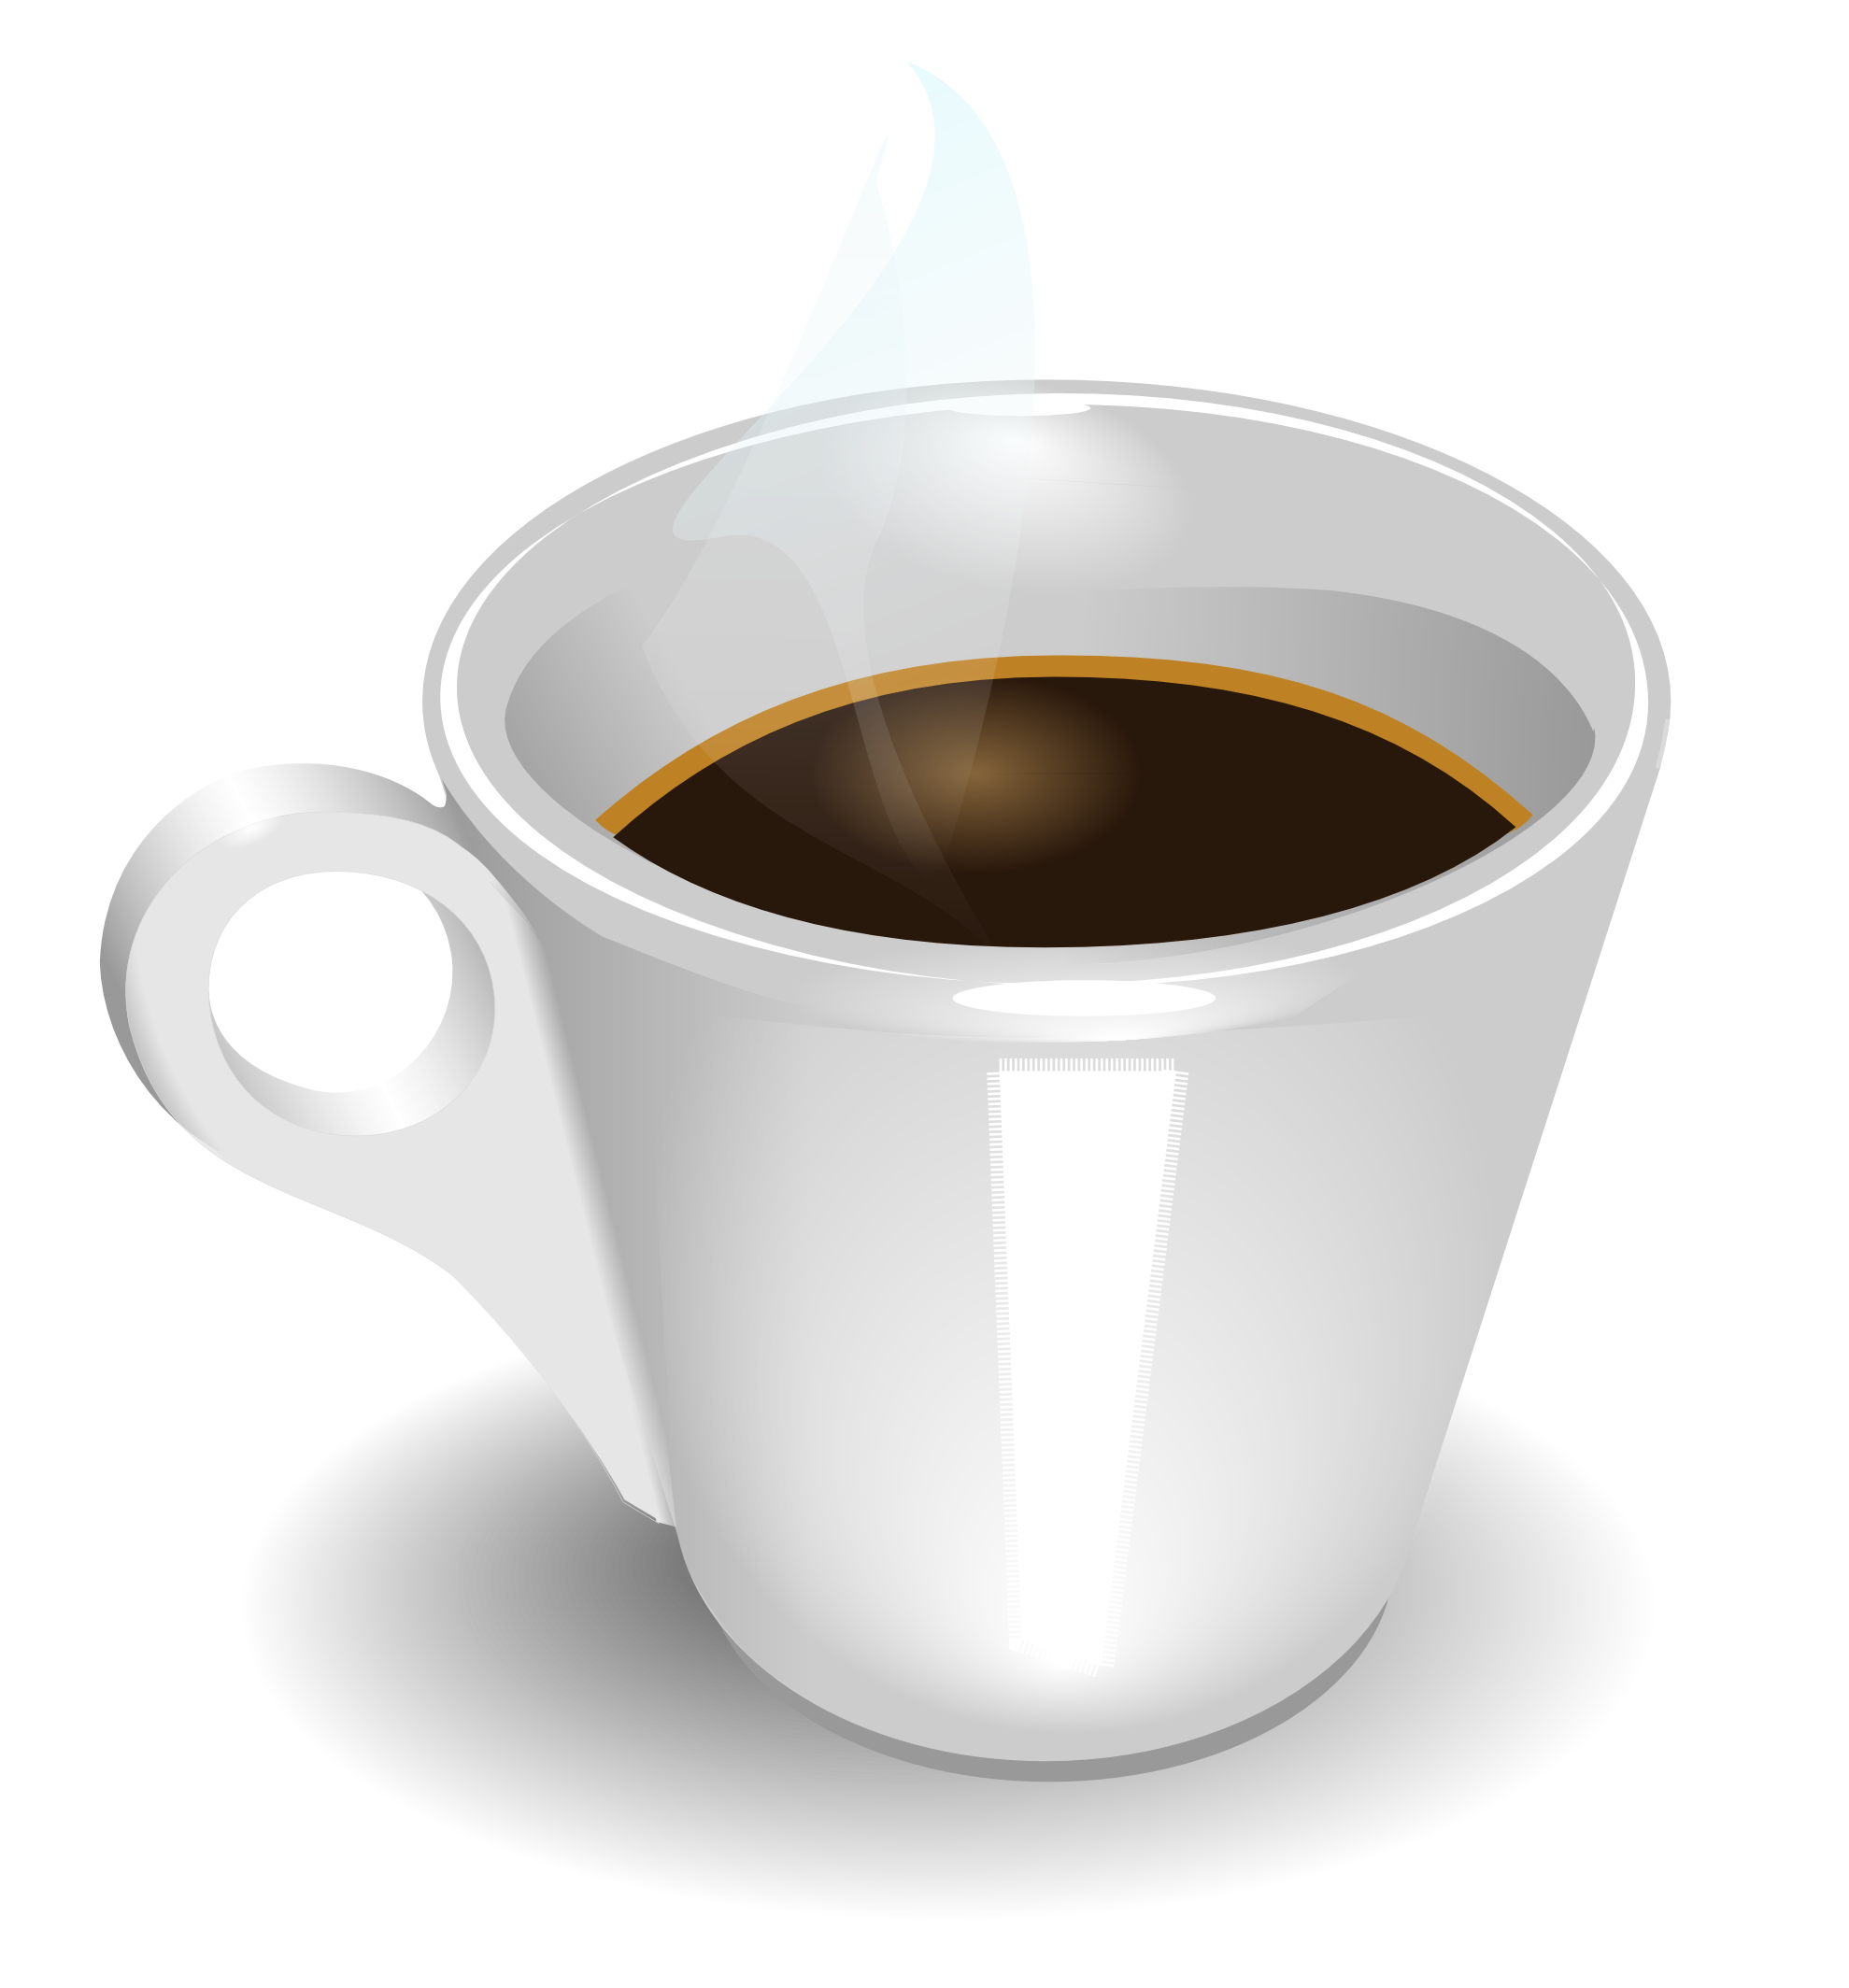 uploads mug coffee mug coffee PNG16882 43